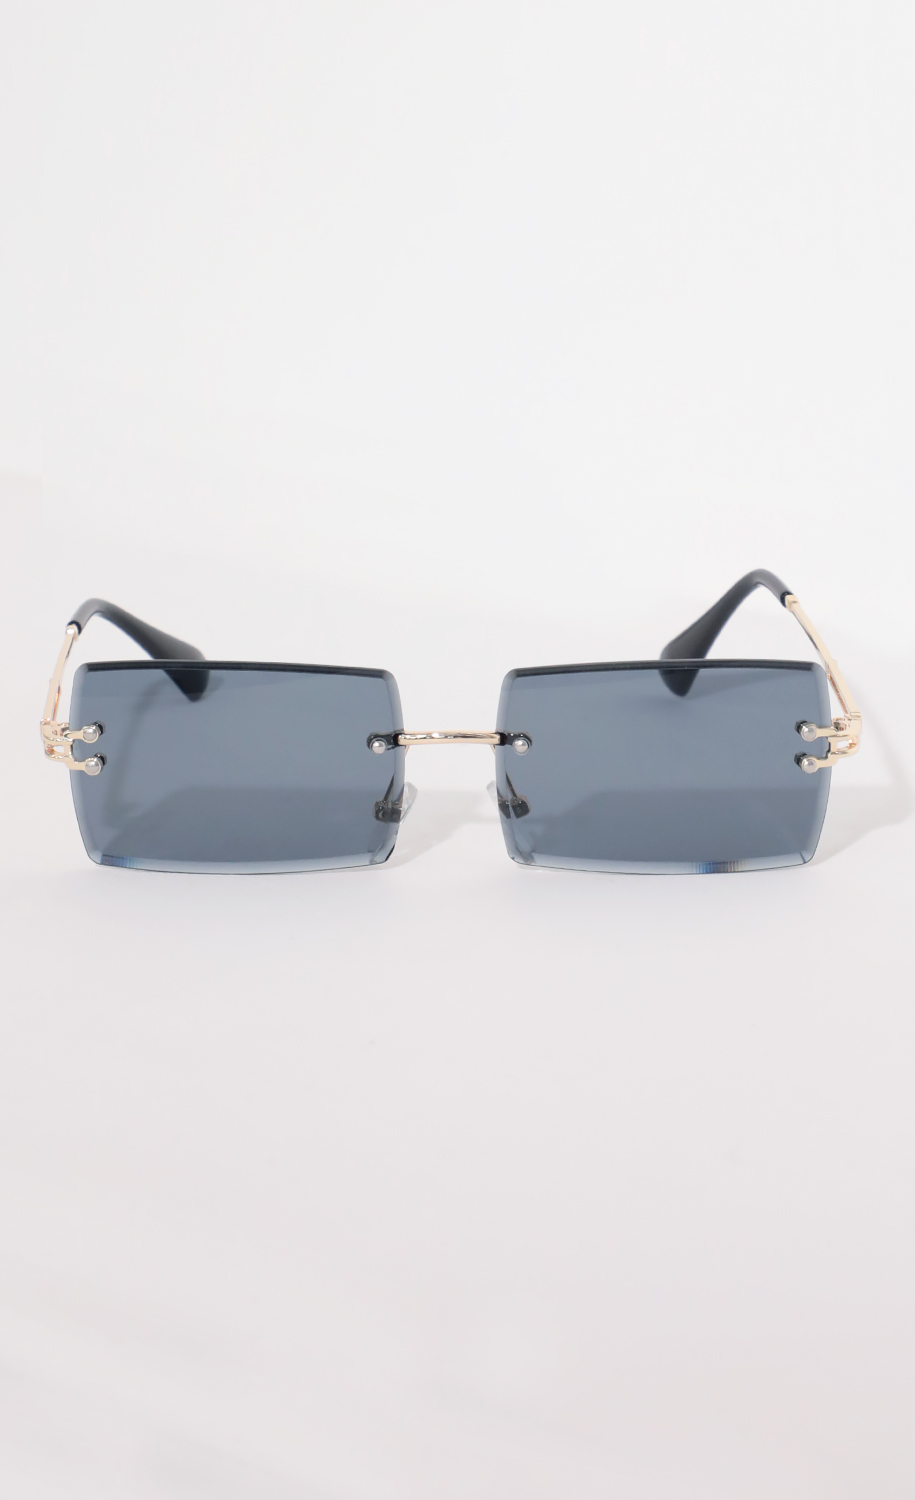 90s Baby Rectangle Sunglasses in Navy